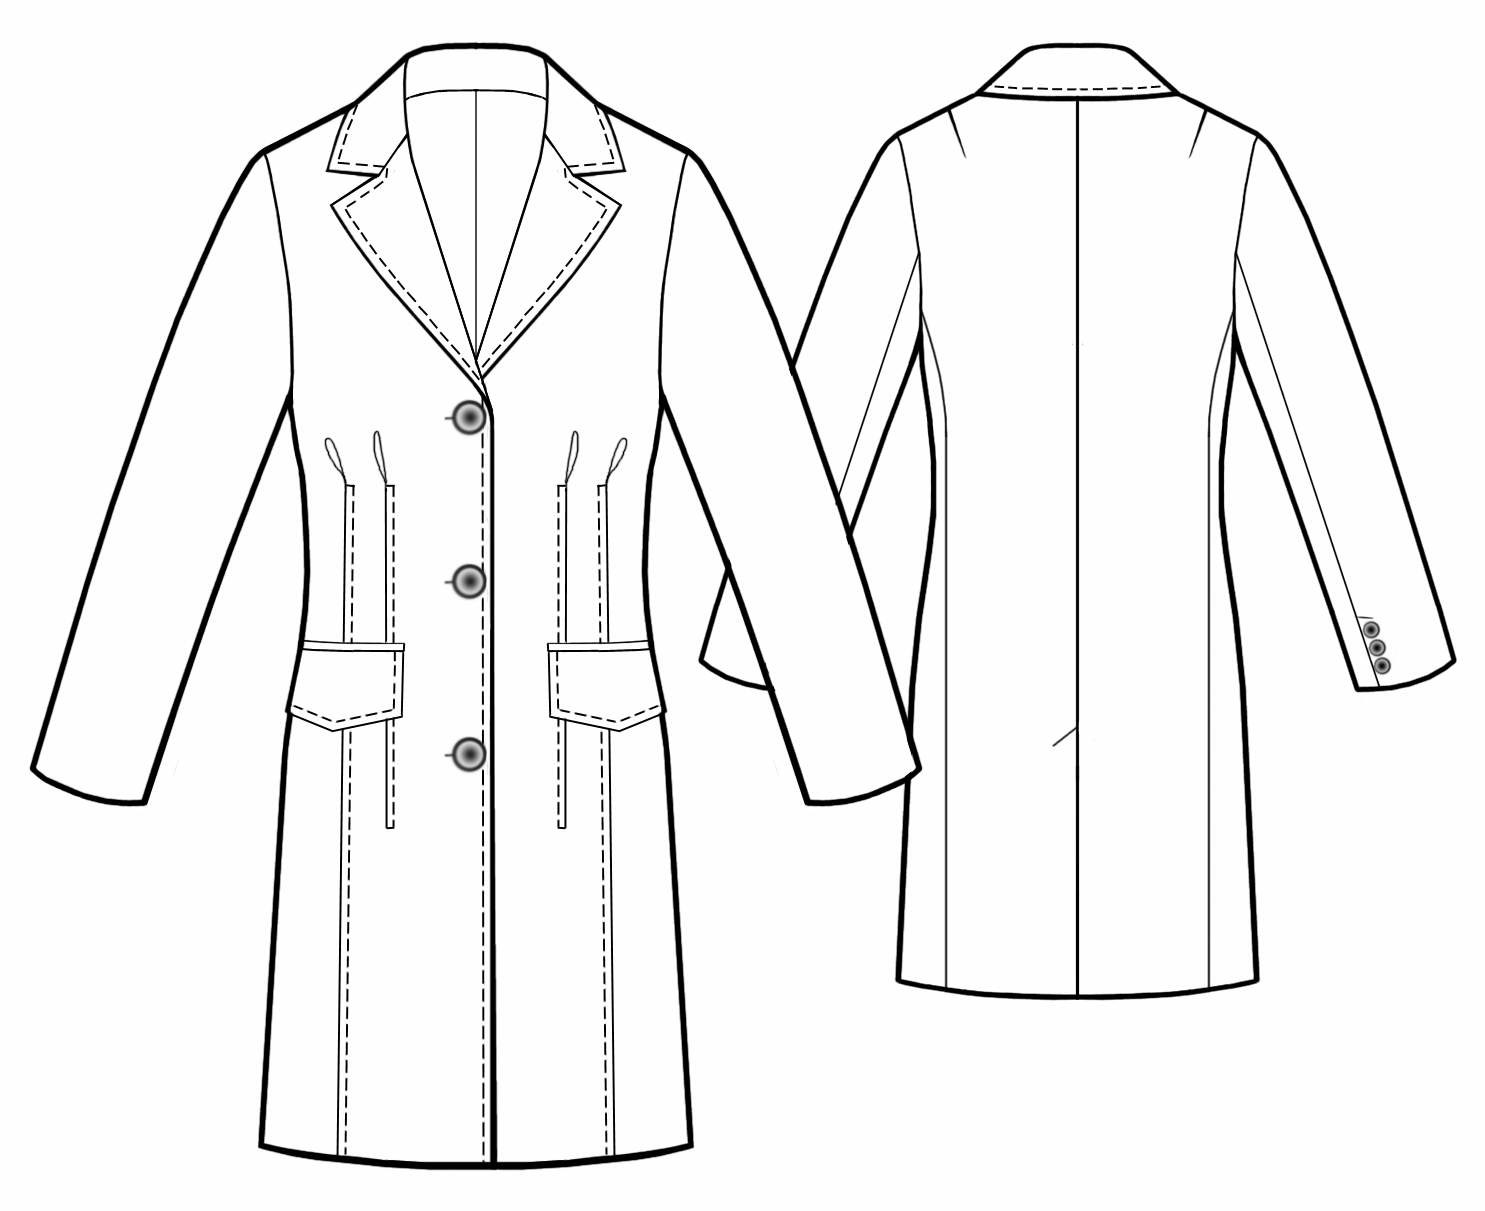 Coat Technical Drawing at GetDrawings.com | Free for personal use ...